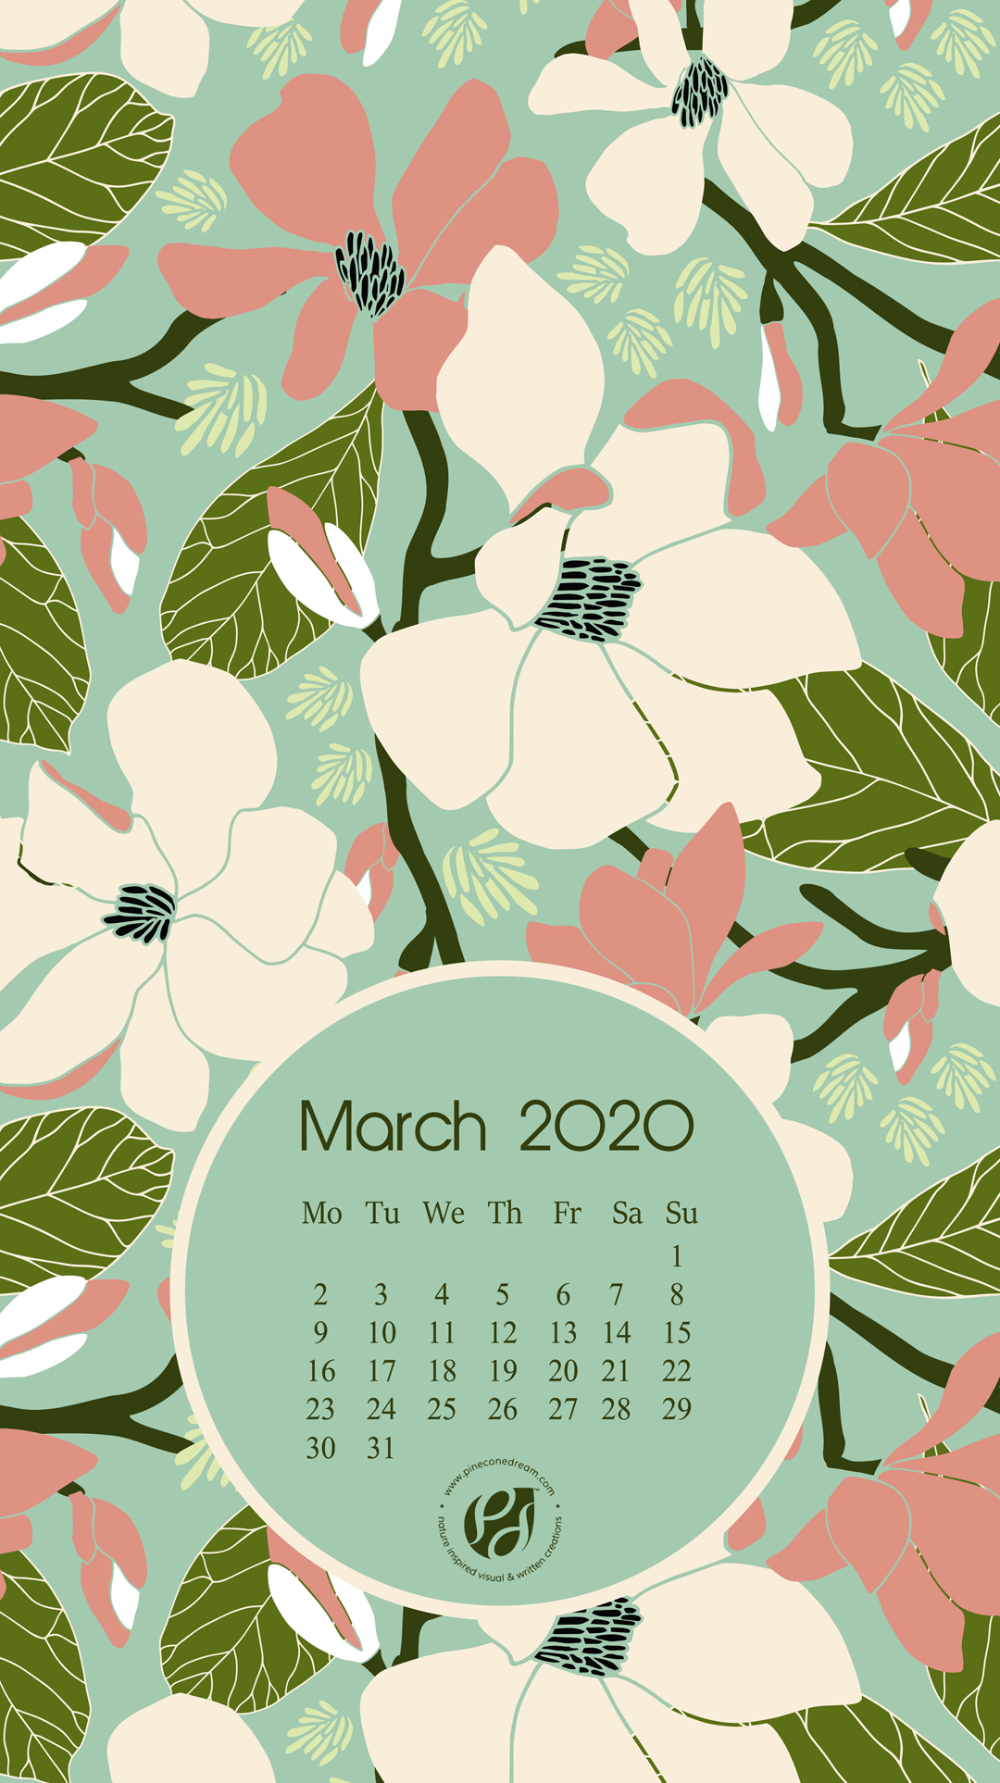 March 2020 Iphone Calendar Wallpaper March 2020 Iphone